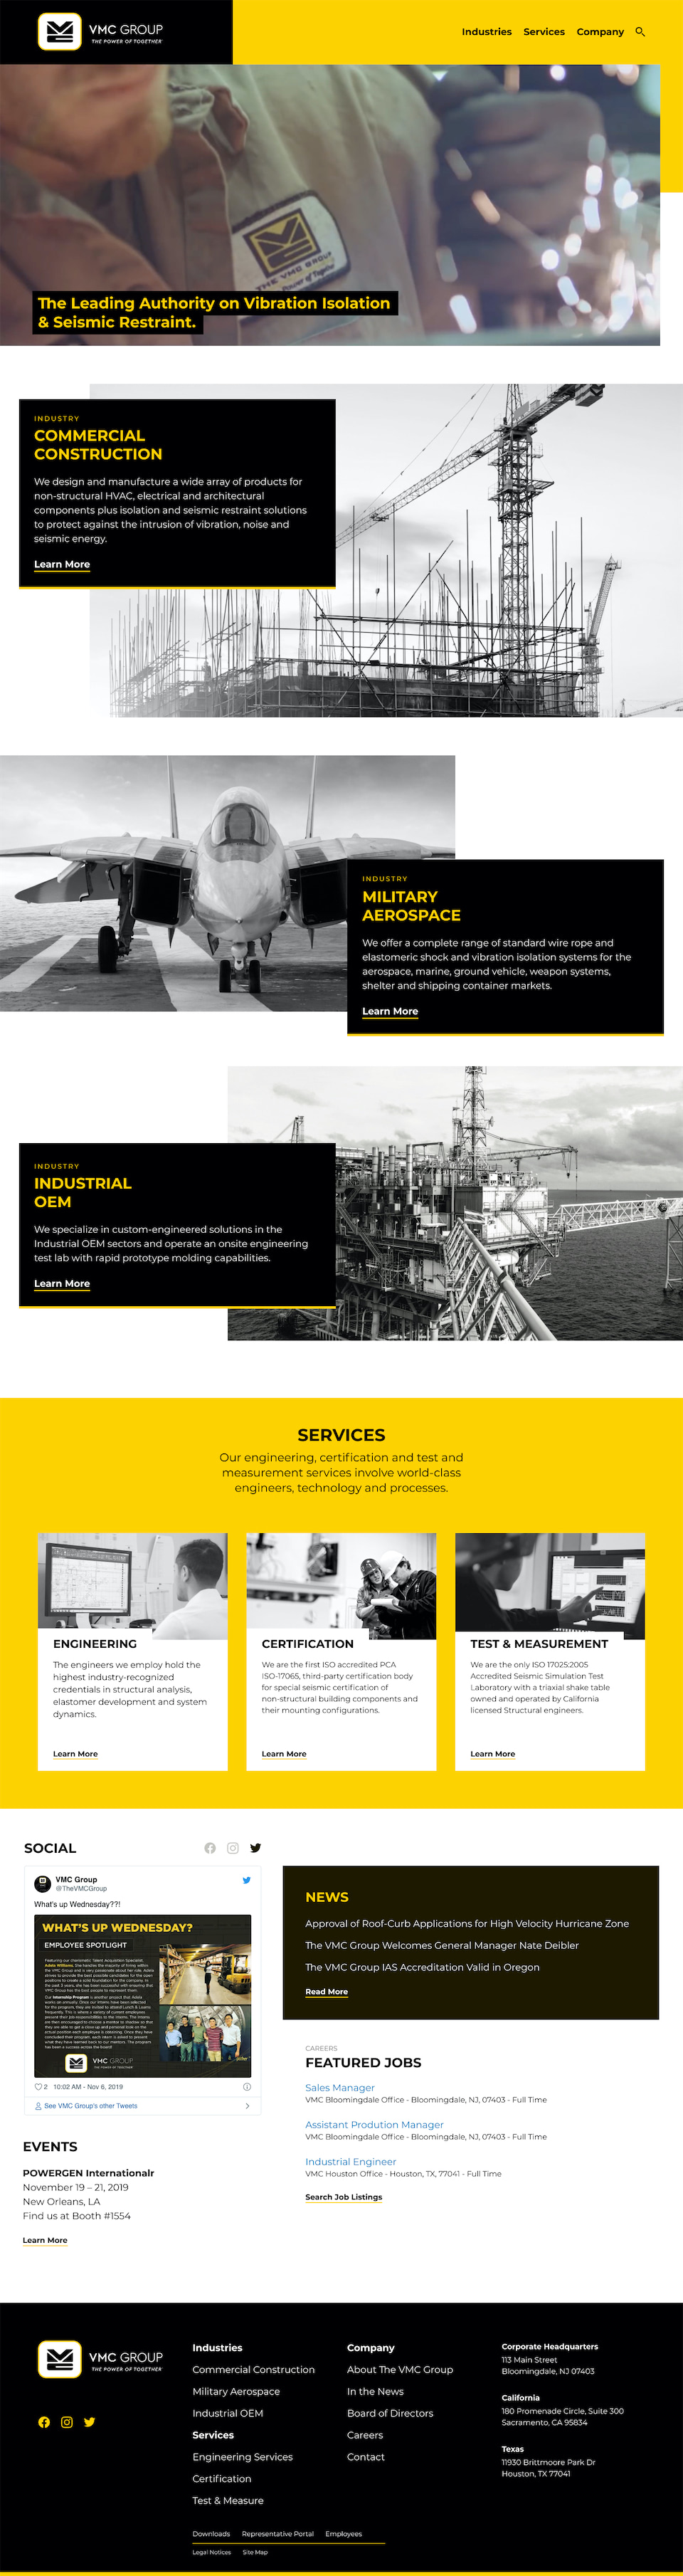 VMC Group Homepage